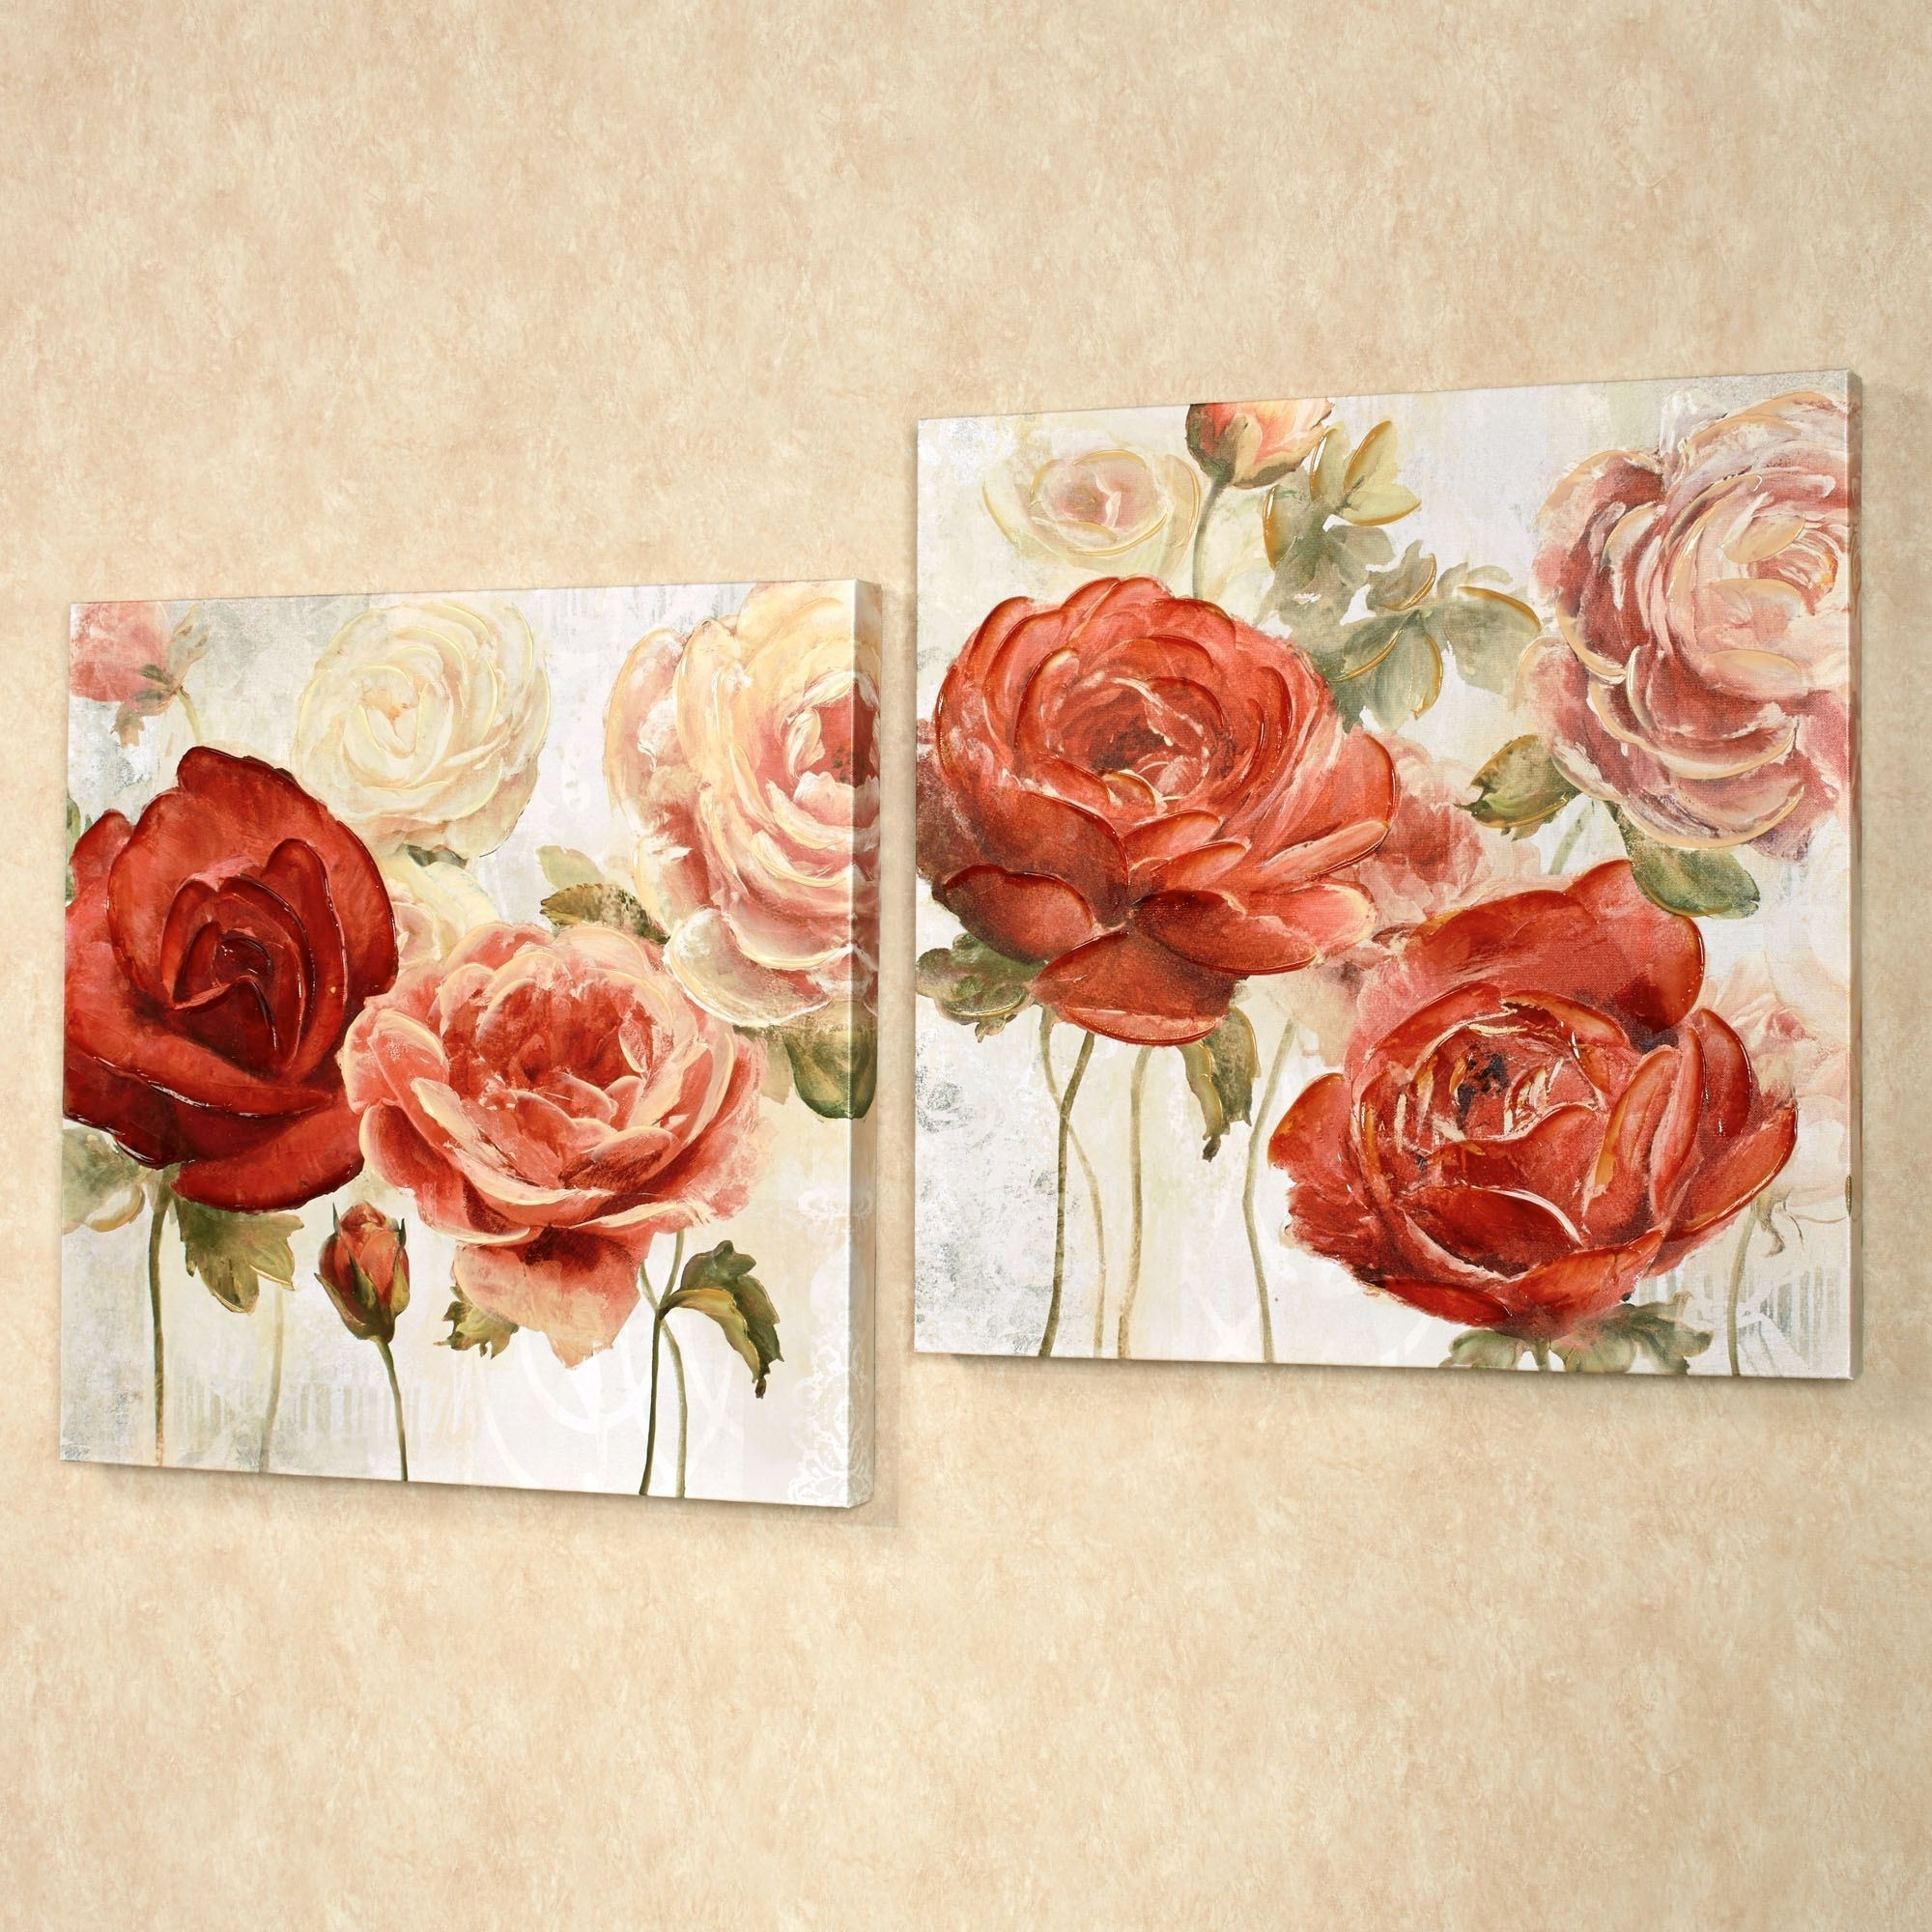 Radiant Blooms Rose Floral Canvas Wall Art Set Inside Newest Rose Canvas Wall Art (View 9 of 15)